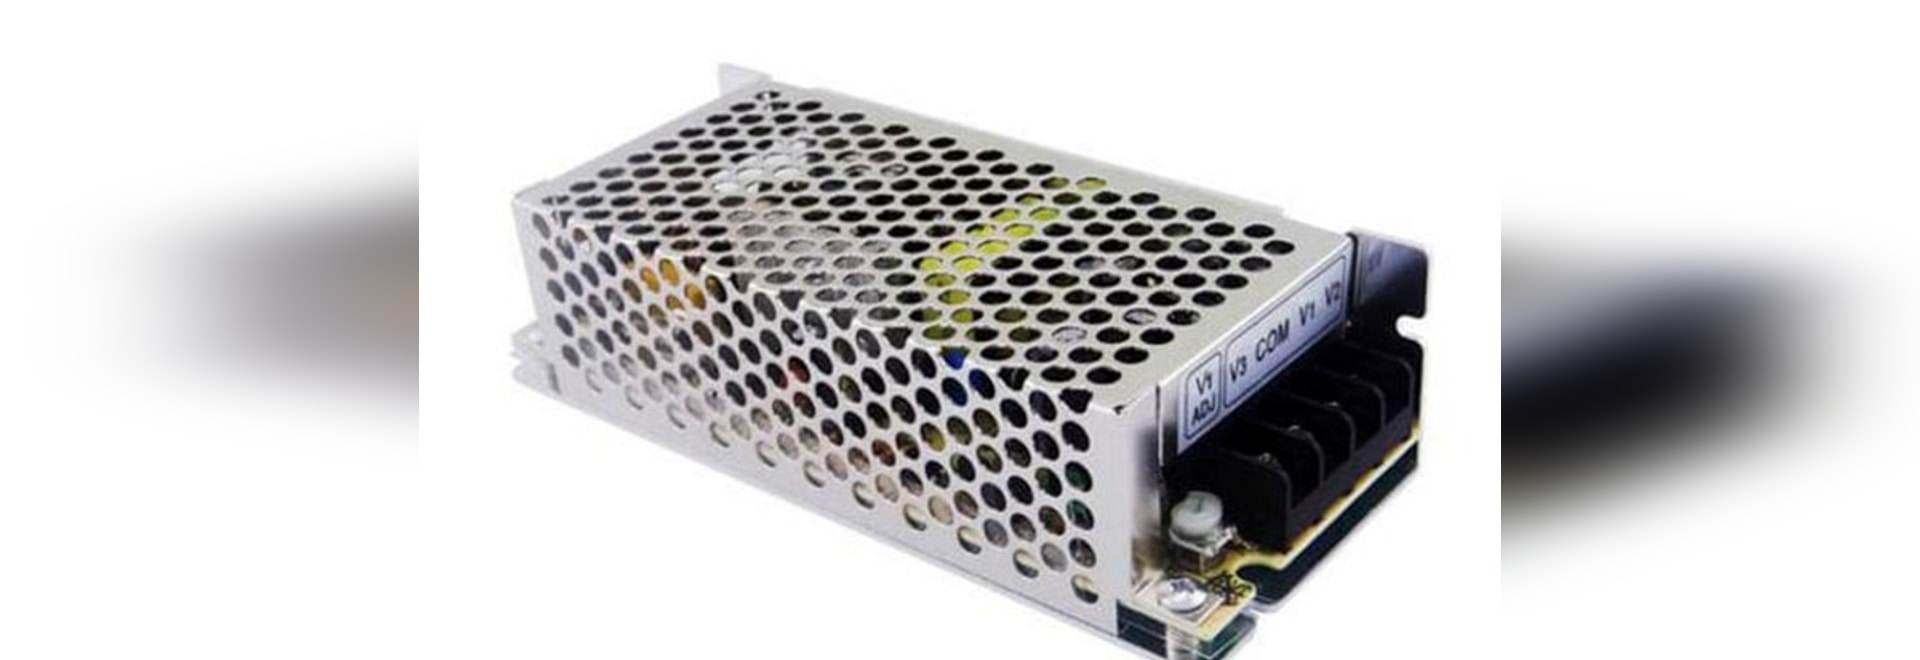 15w Wide Input Ac Dc Switching Power Supply China Guangzhou Top High Voltage 3000v Selectable By Switch 90264 Vac